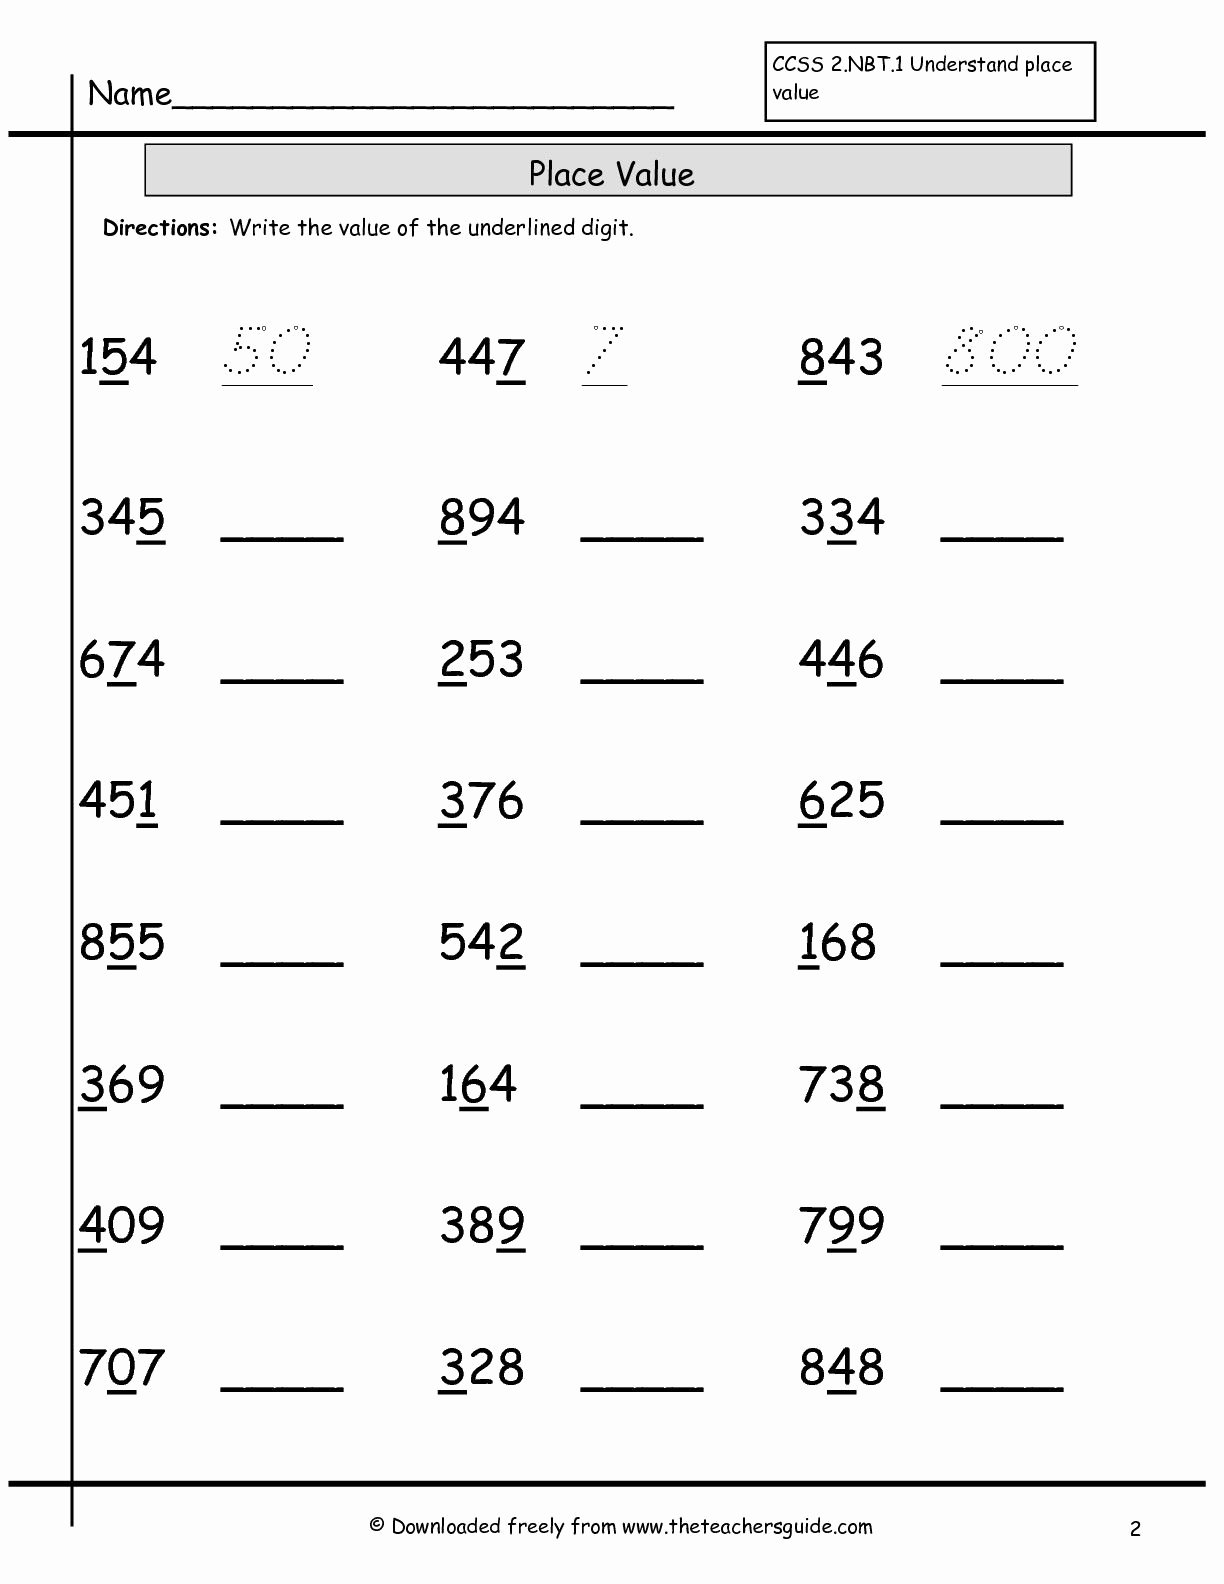 Place Value Worksheets 2nd Grade Printable Place Value Worksheets From the Teacher S Guide